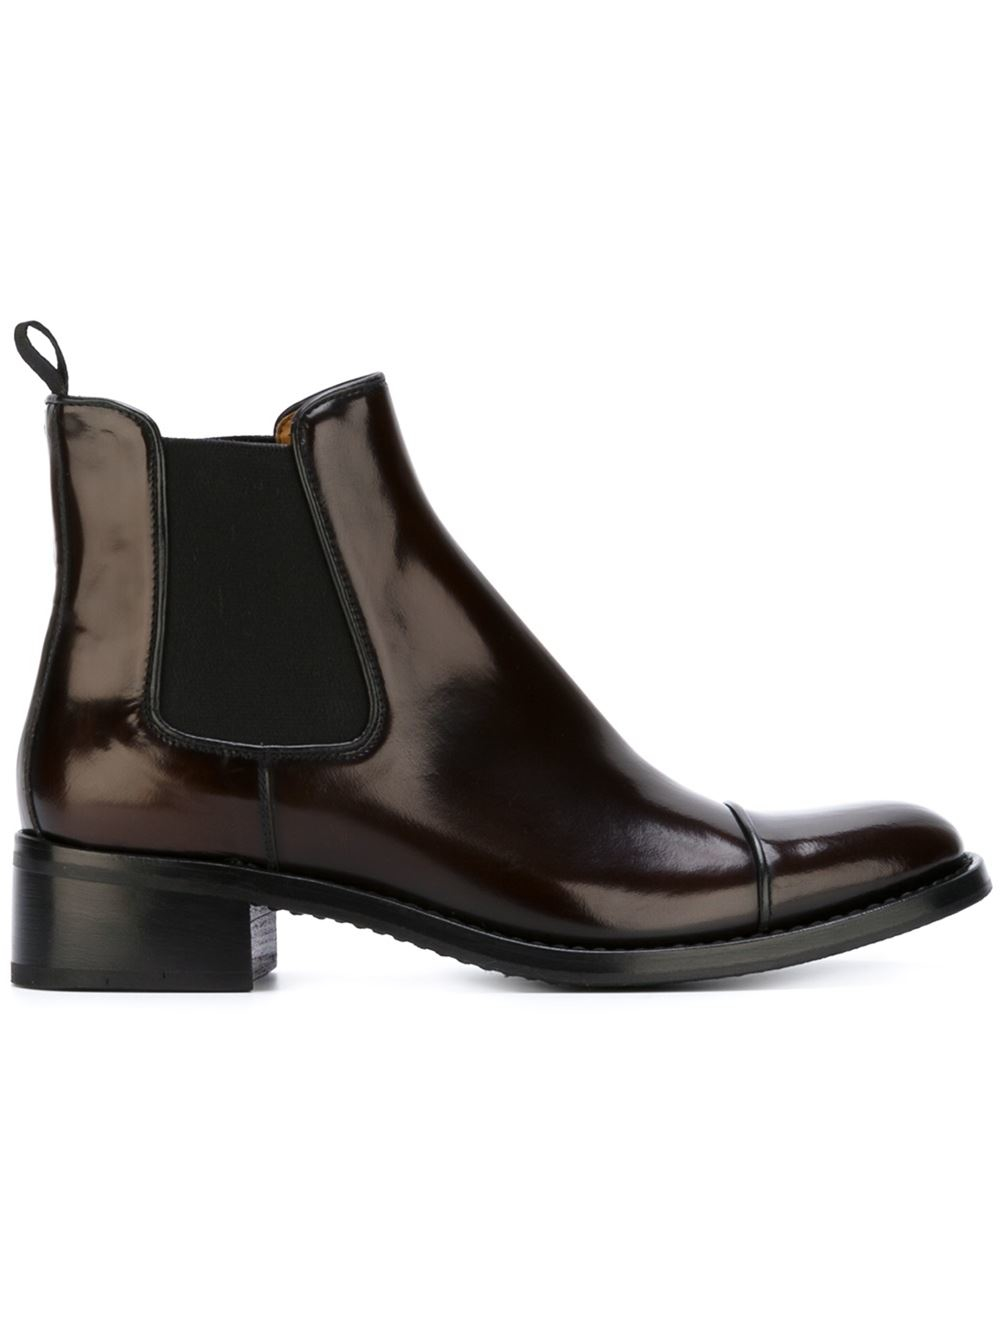 church 39 s 39 nerina 39 chelsea boots in brown lyst. Black Bedroom Furniture Sets. Home Design Ideas